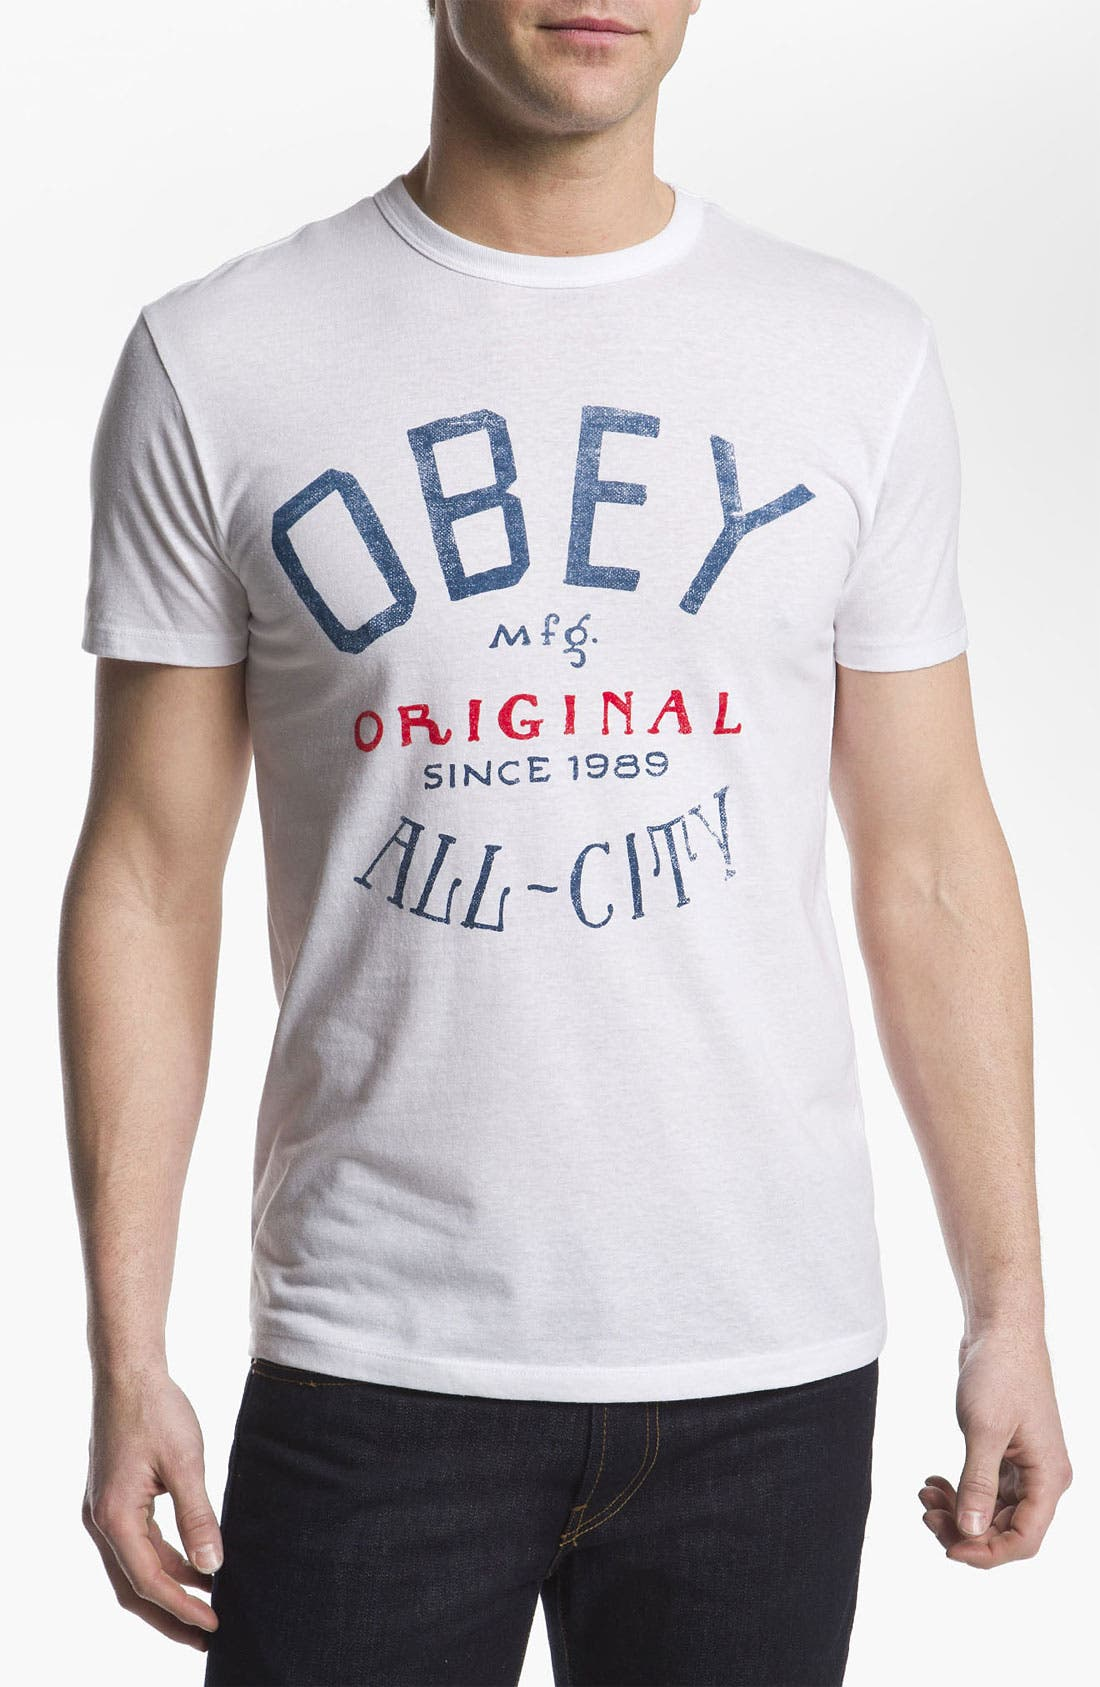 Alternate Image 1 Selected - Obey 'All City' T-Shirt